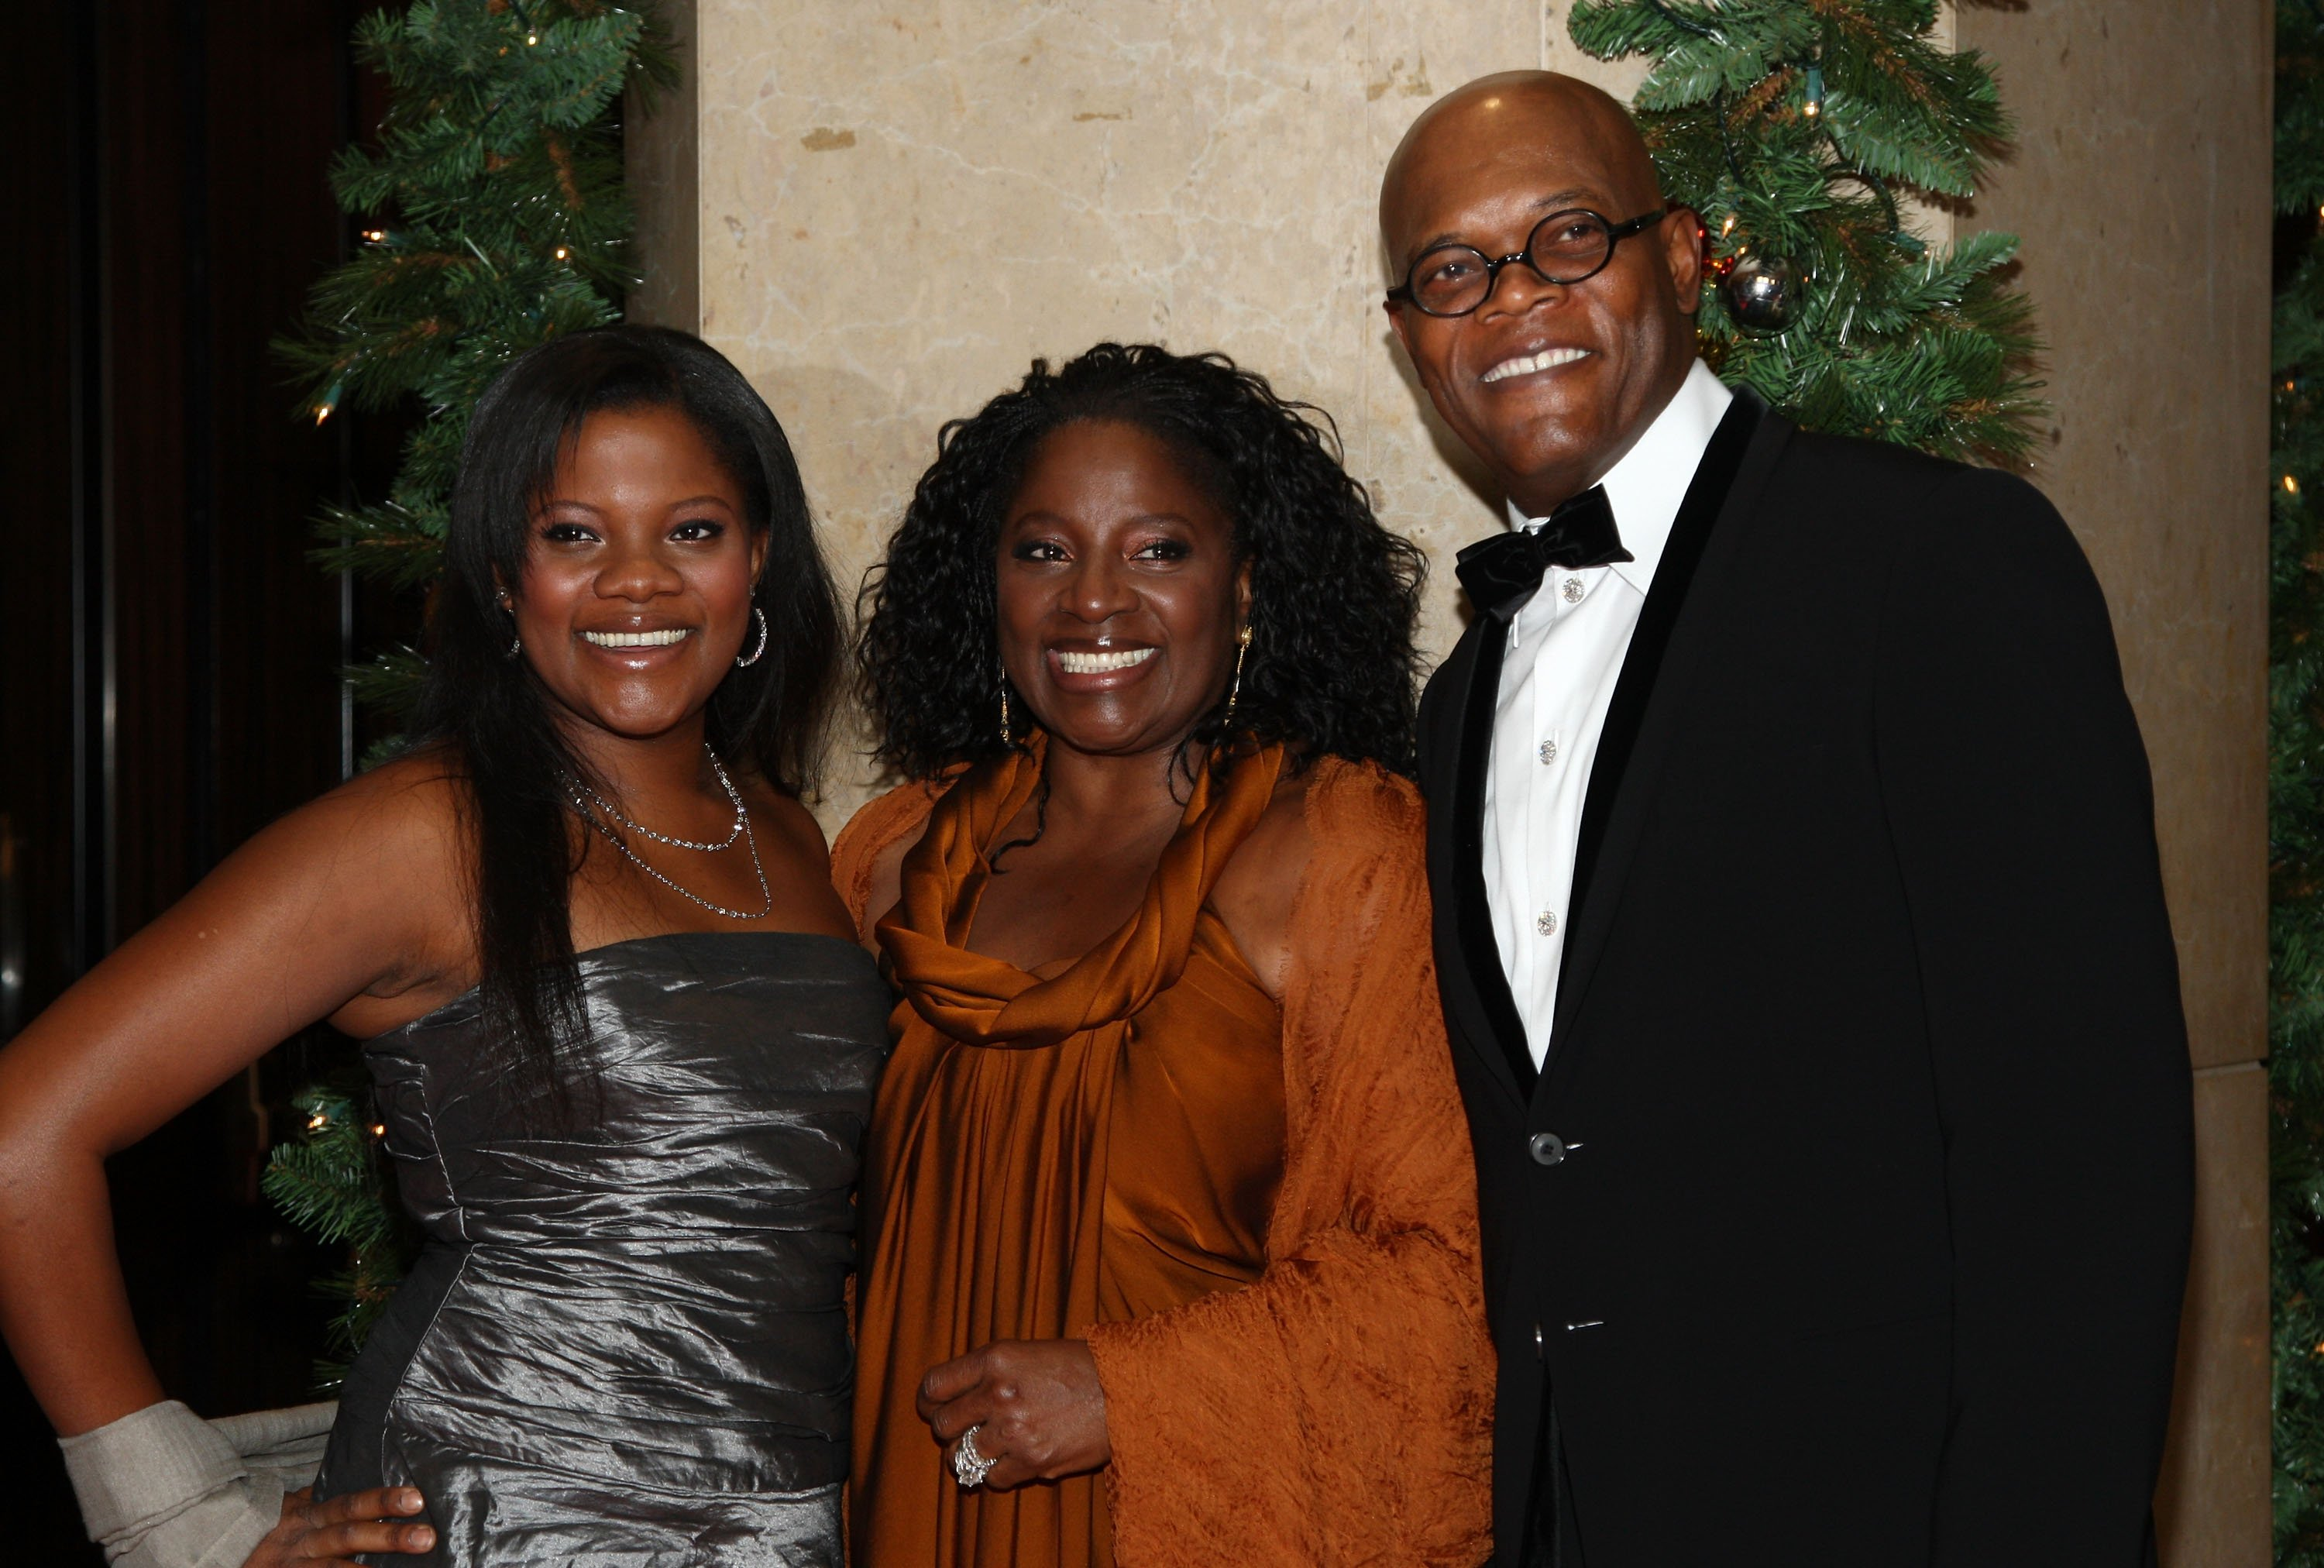 Samuel L. Jackson (far R), wife LaTanya Richardson (C) and daughter Zoe Jackson arrive at the 23rd annual American Cinematheque show honoring Samuel L. Jackson held at Beverly Hilton Hotel on December 1, 2008, in Beverly Hills, California. | Source: Getty Images.